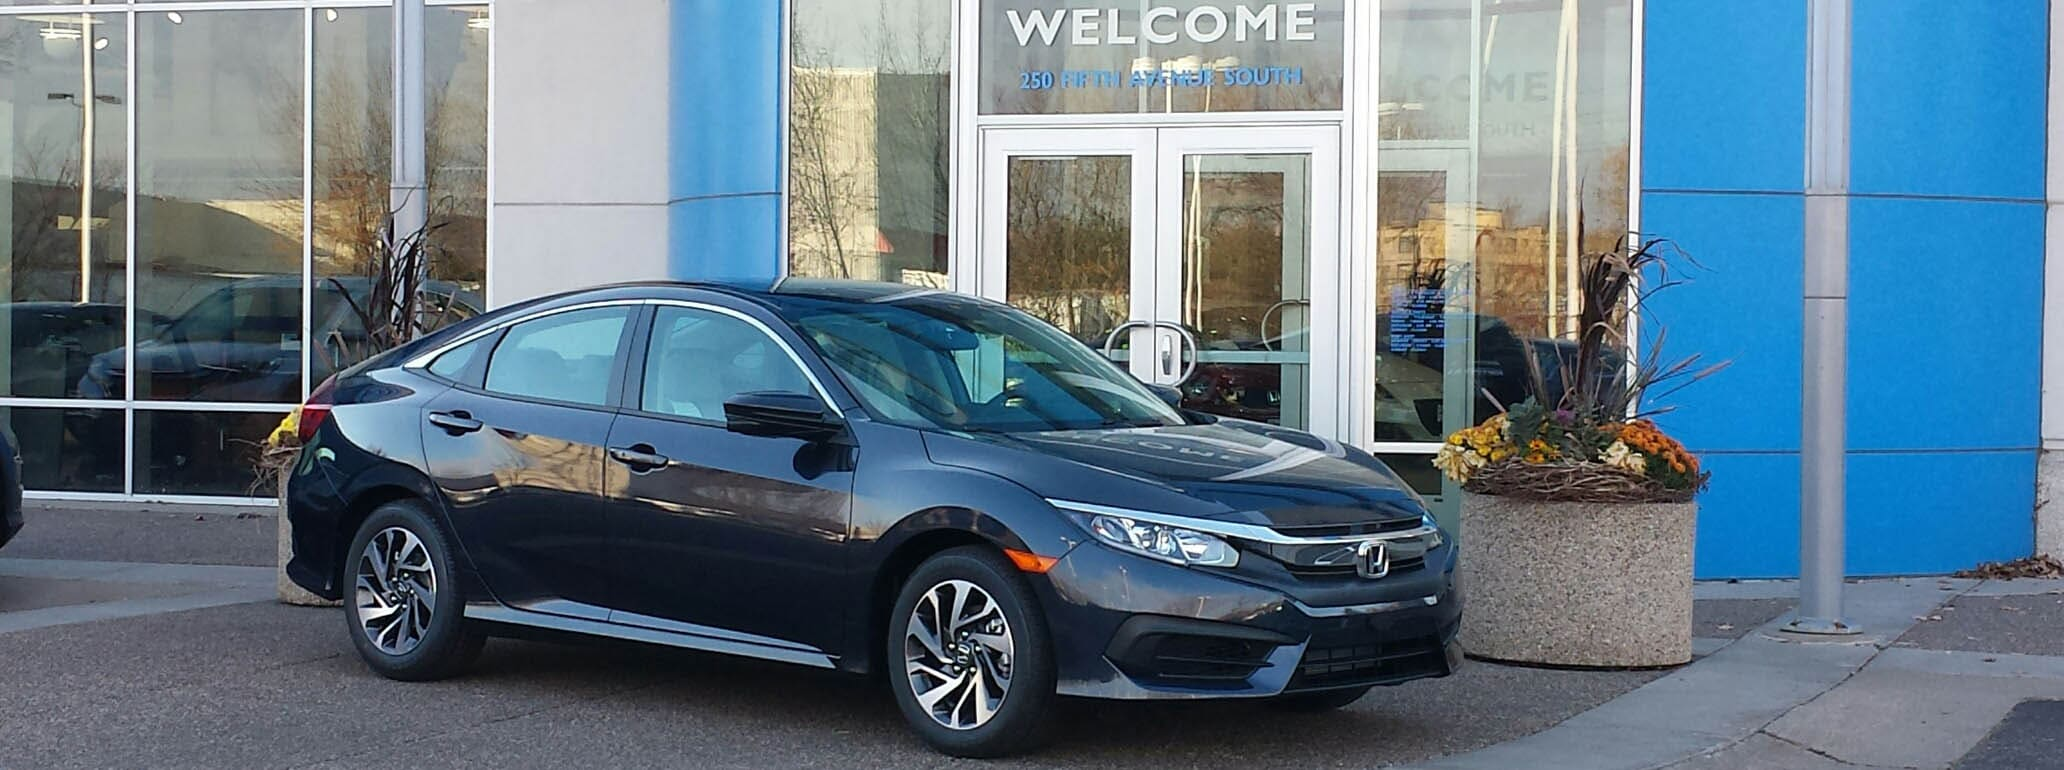 Available Now at Luther Hopkins Honda: The 2016 Honda Civic